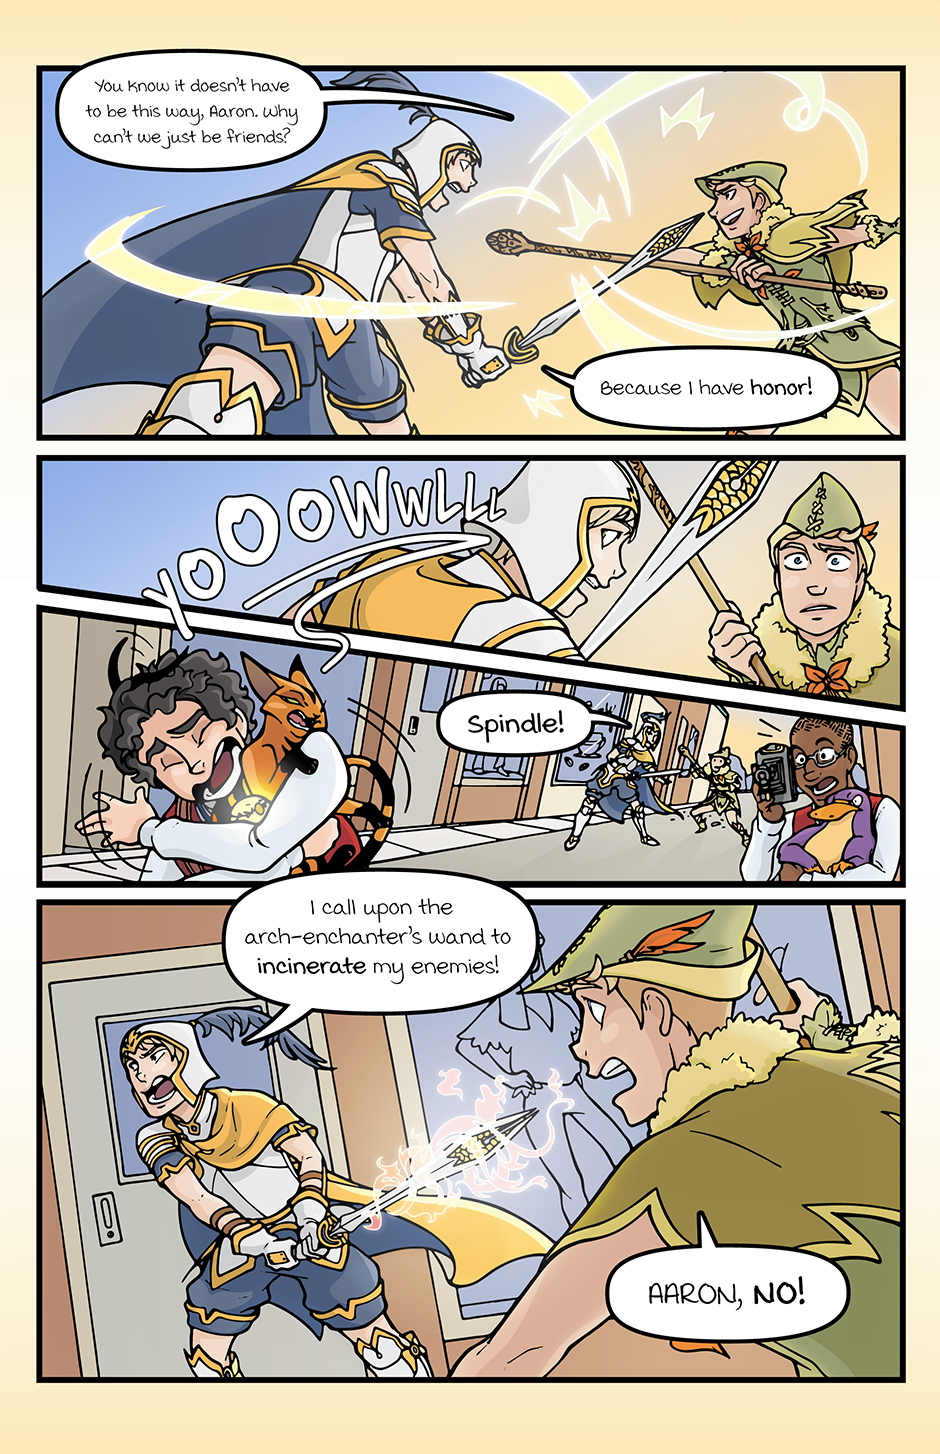 Ch05-P018_forSS.png